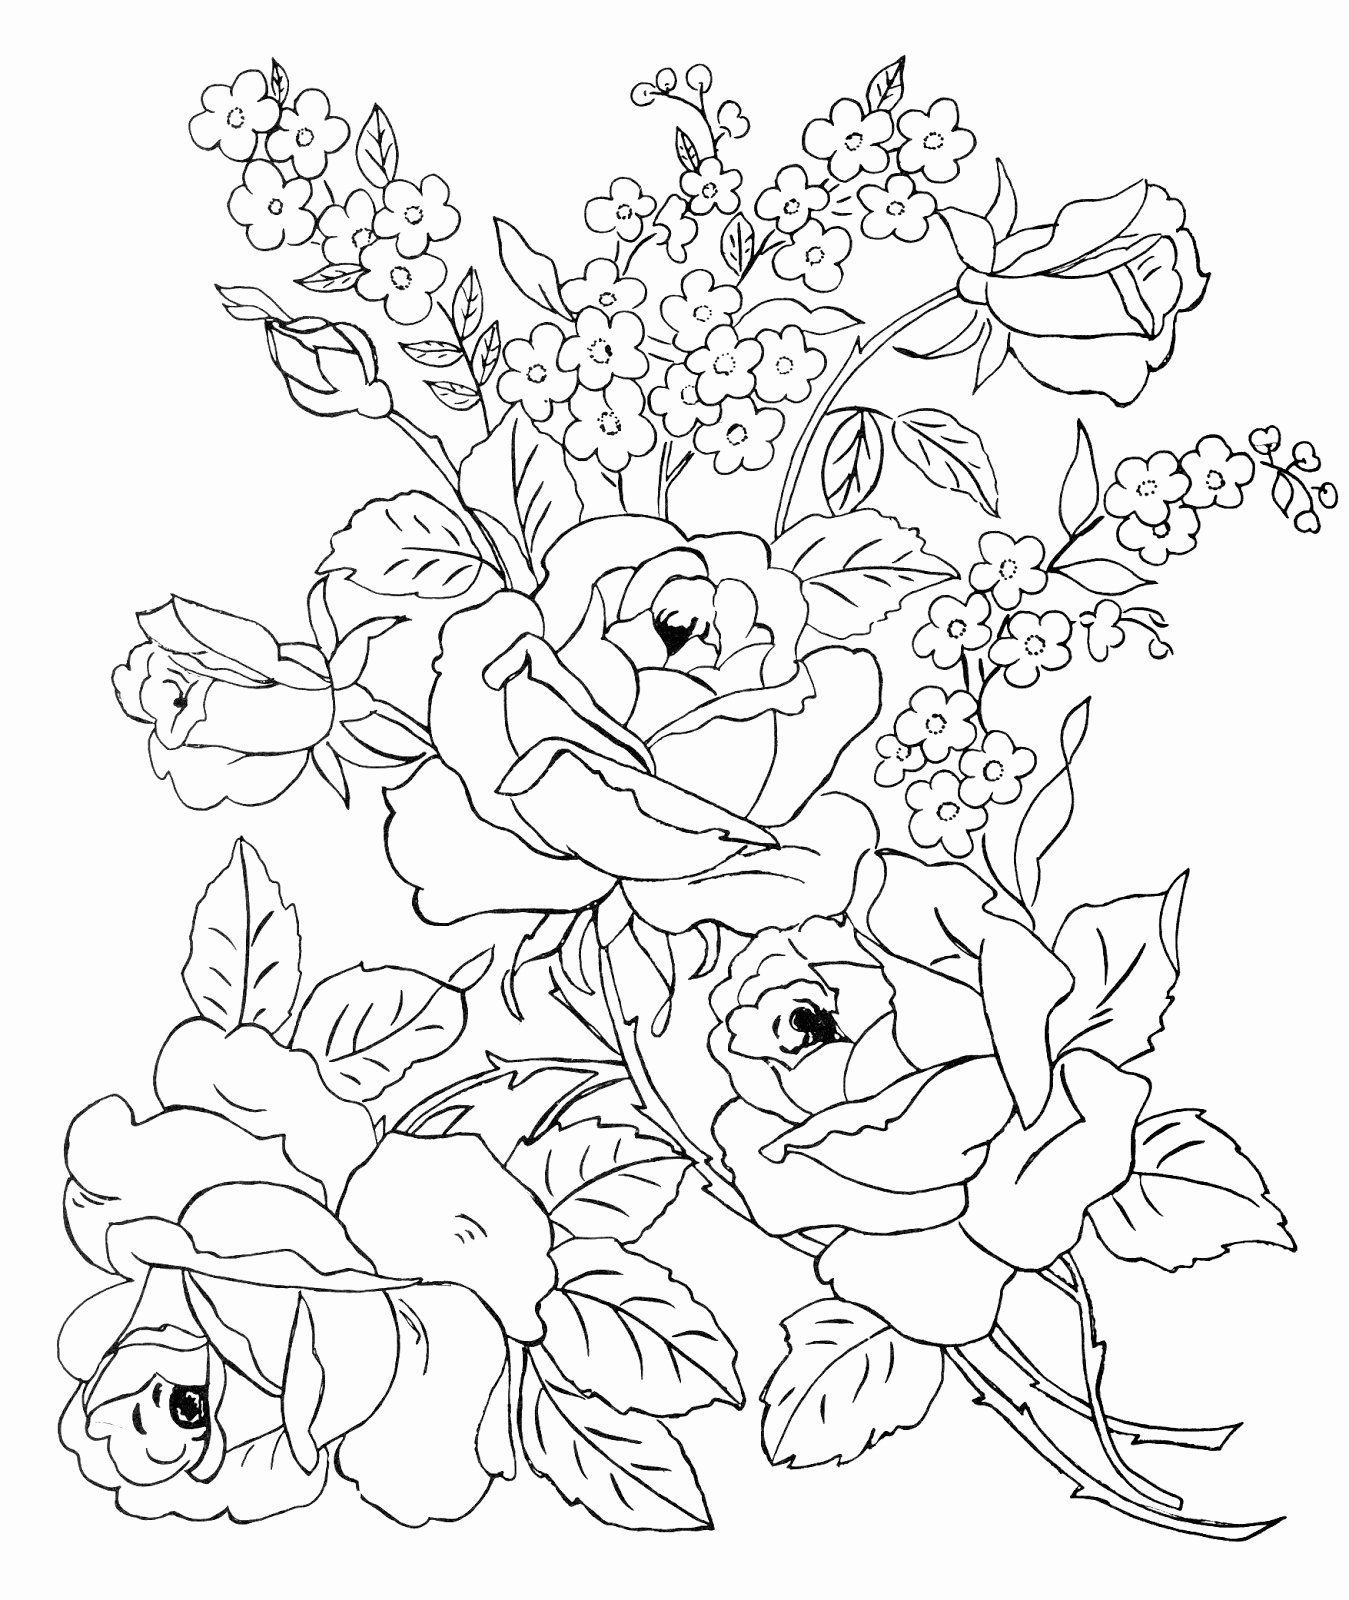 Coloring Pages Flowers Hard Best Of Digital Two For Tuesday Last Of The Digital Flowers Flower Coloring Pages Fabric Painting Coloring Pages